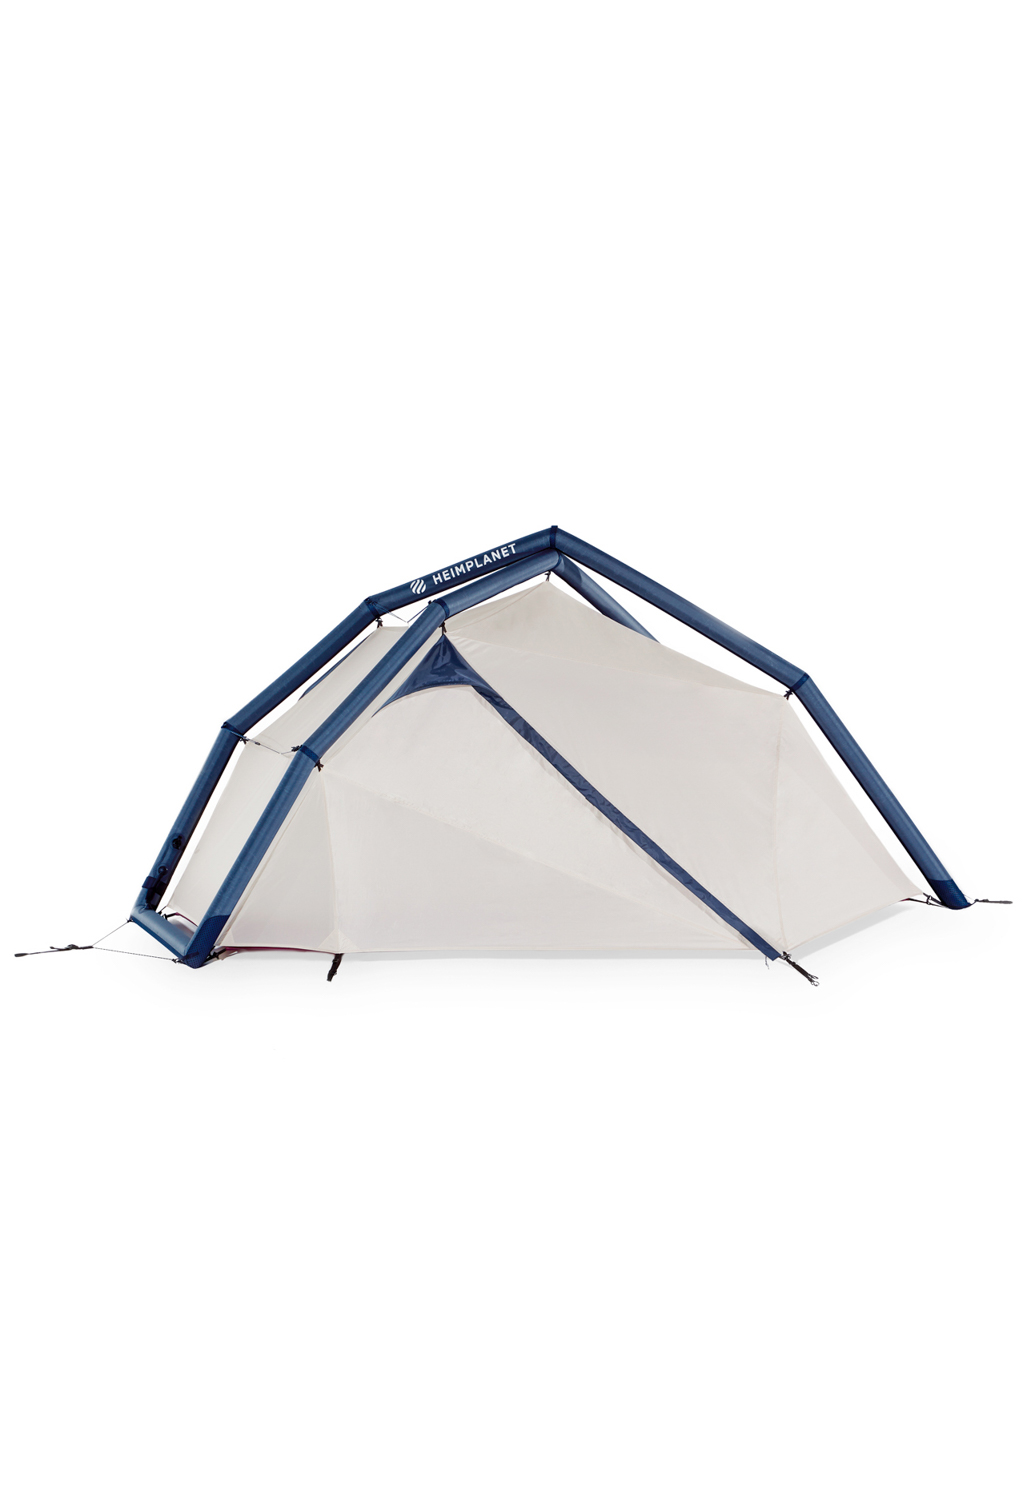 Heimplanet Fistral Tent 0